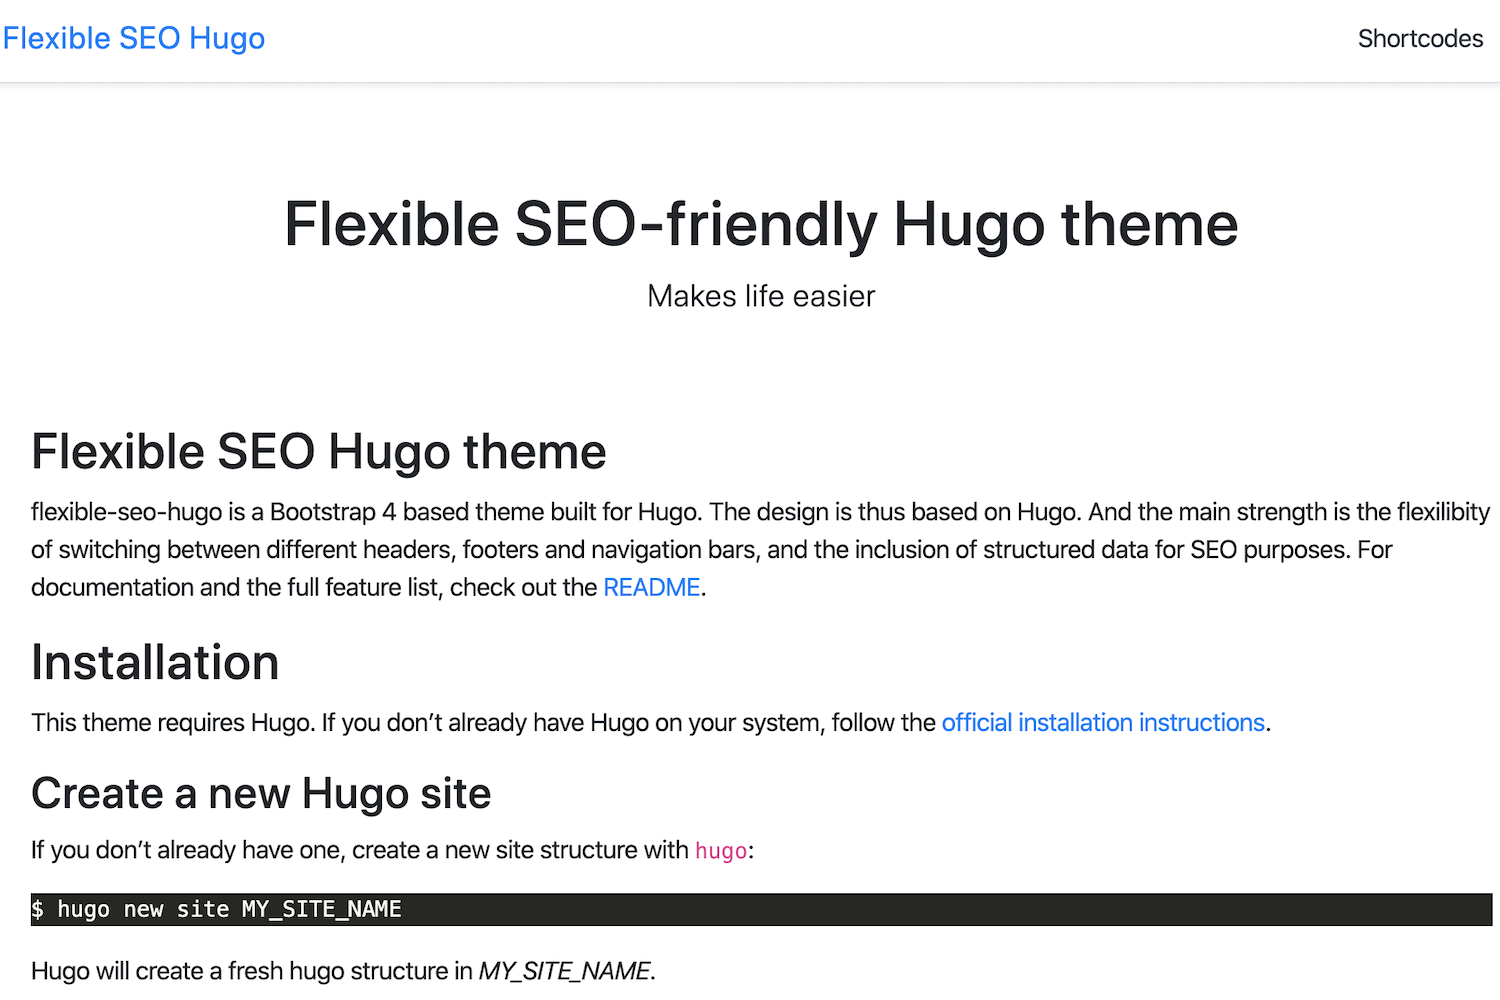 Flexible SEO Hugo Theme Screenshot